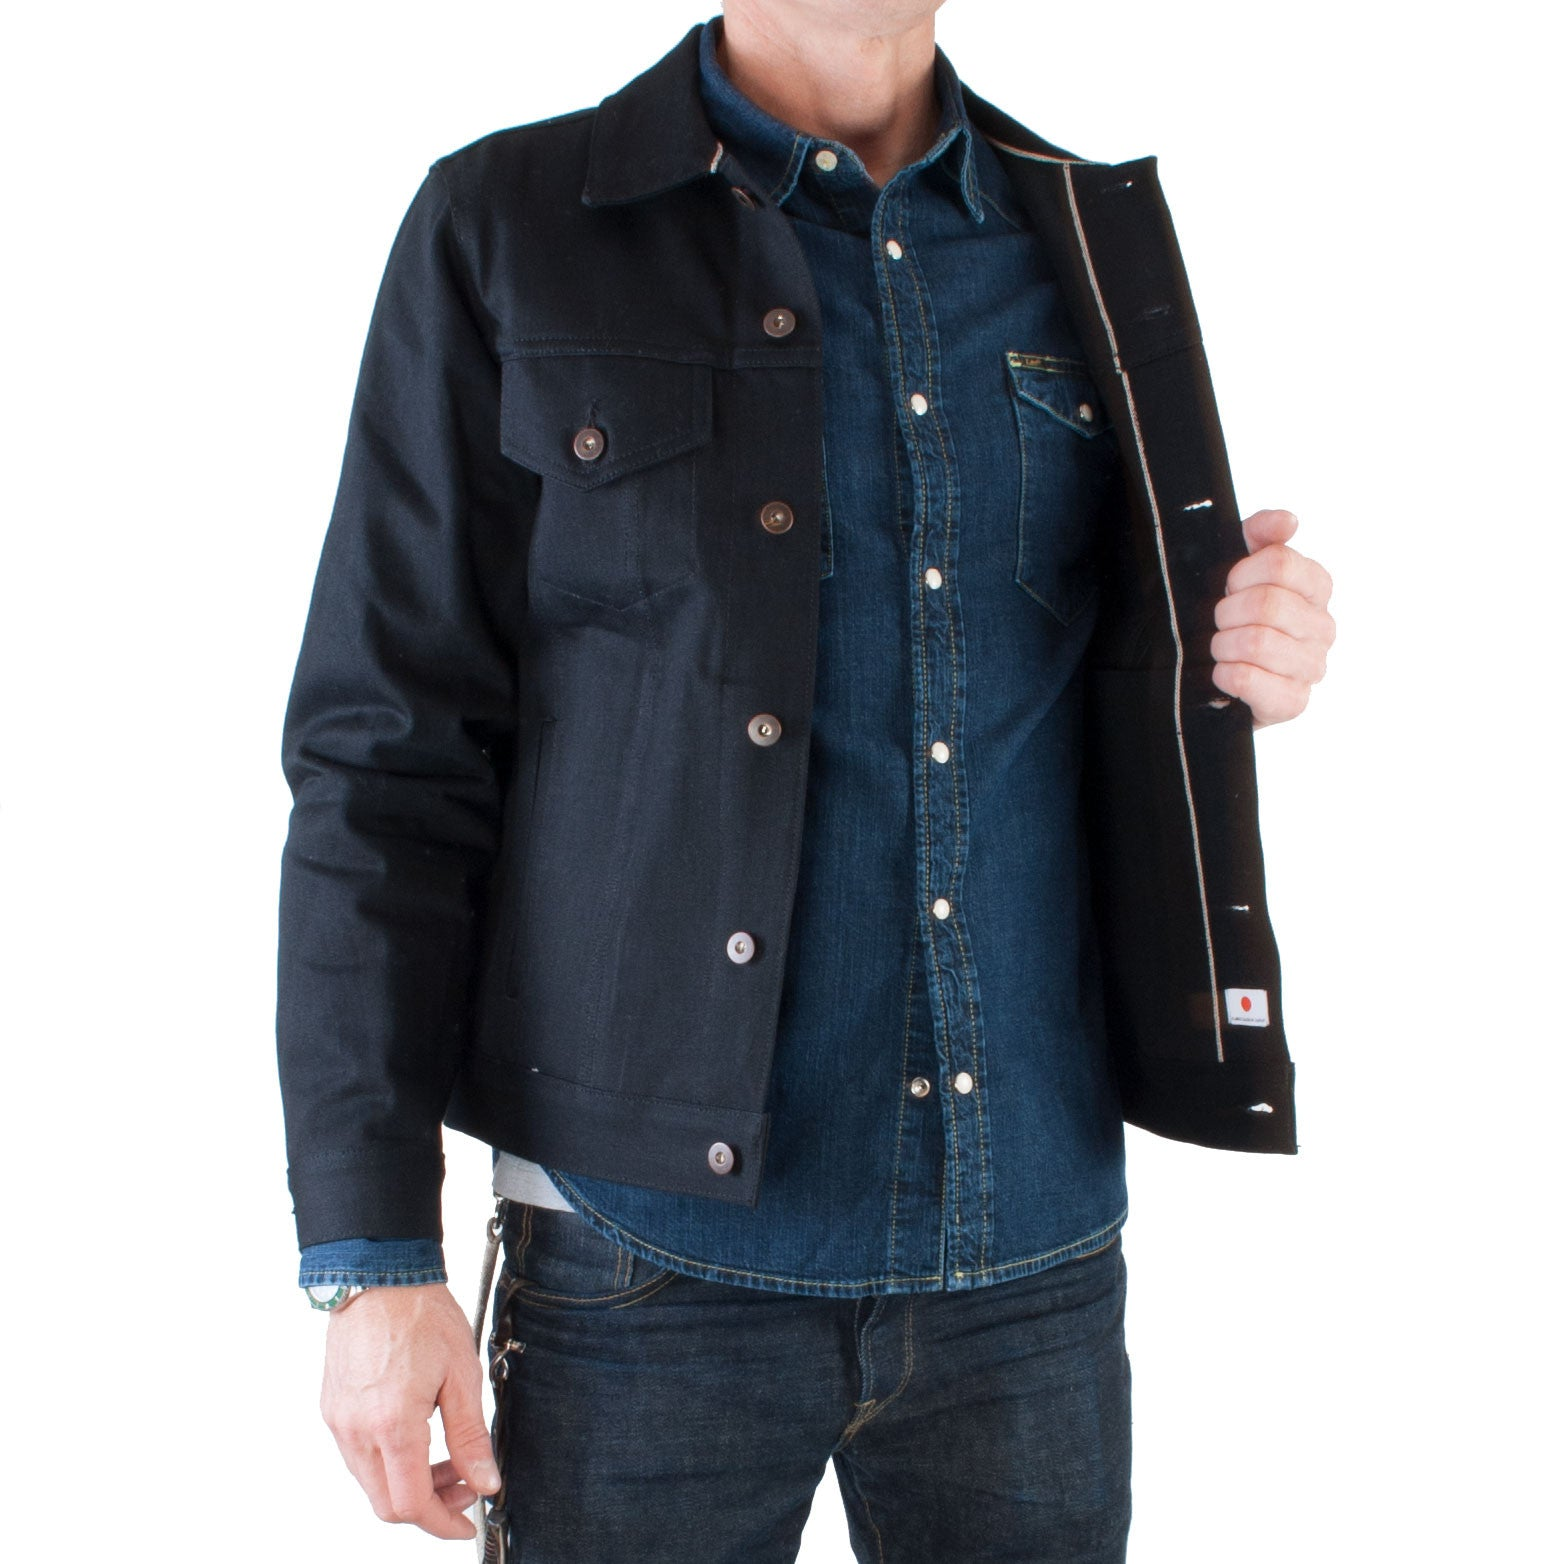 Tellason - Japanese Selvage Denim Jacket, 13.5 oz (Black) - Brund - 2